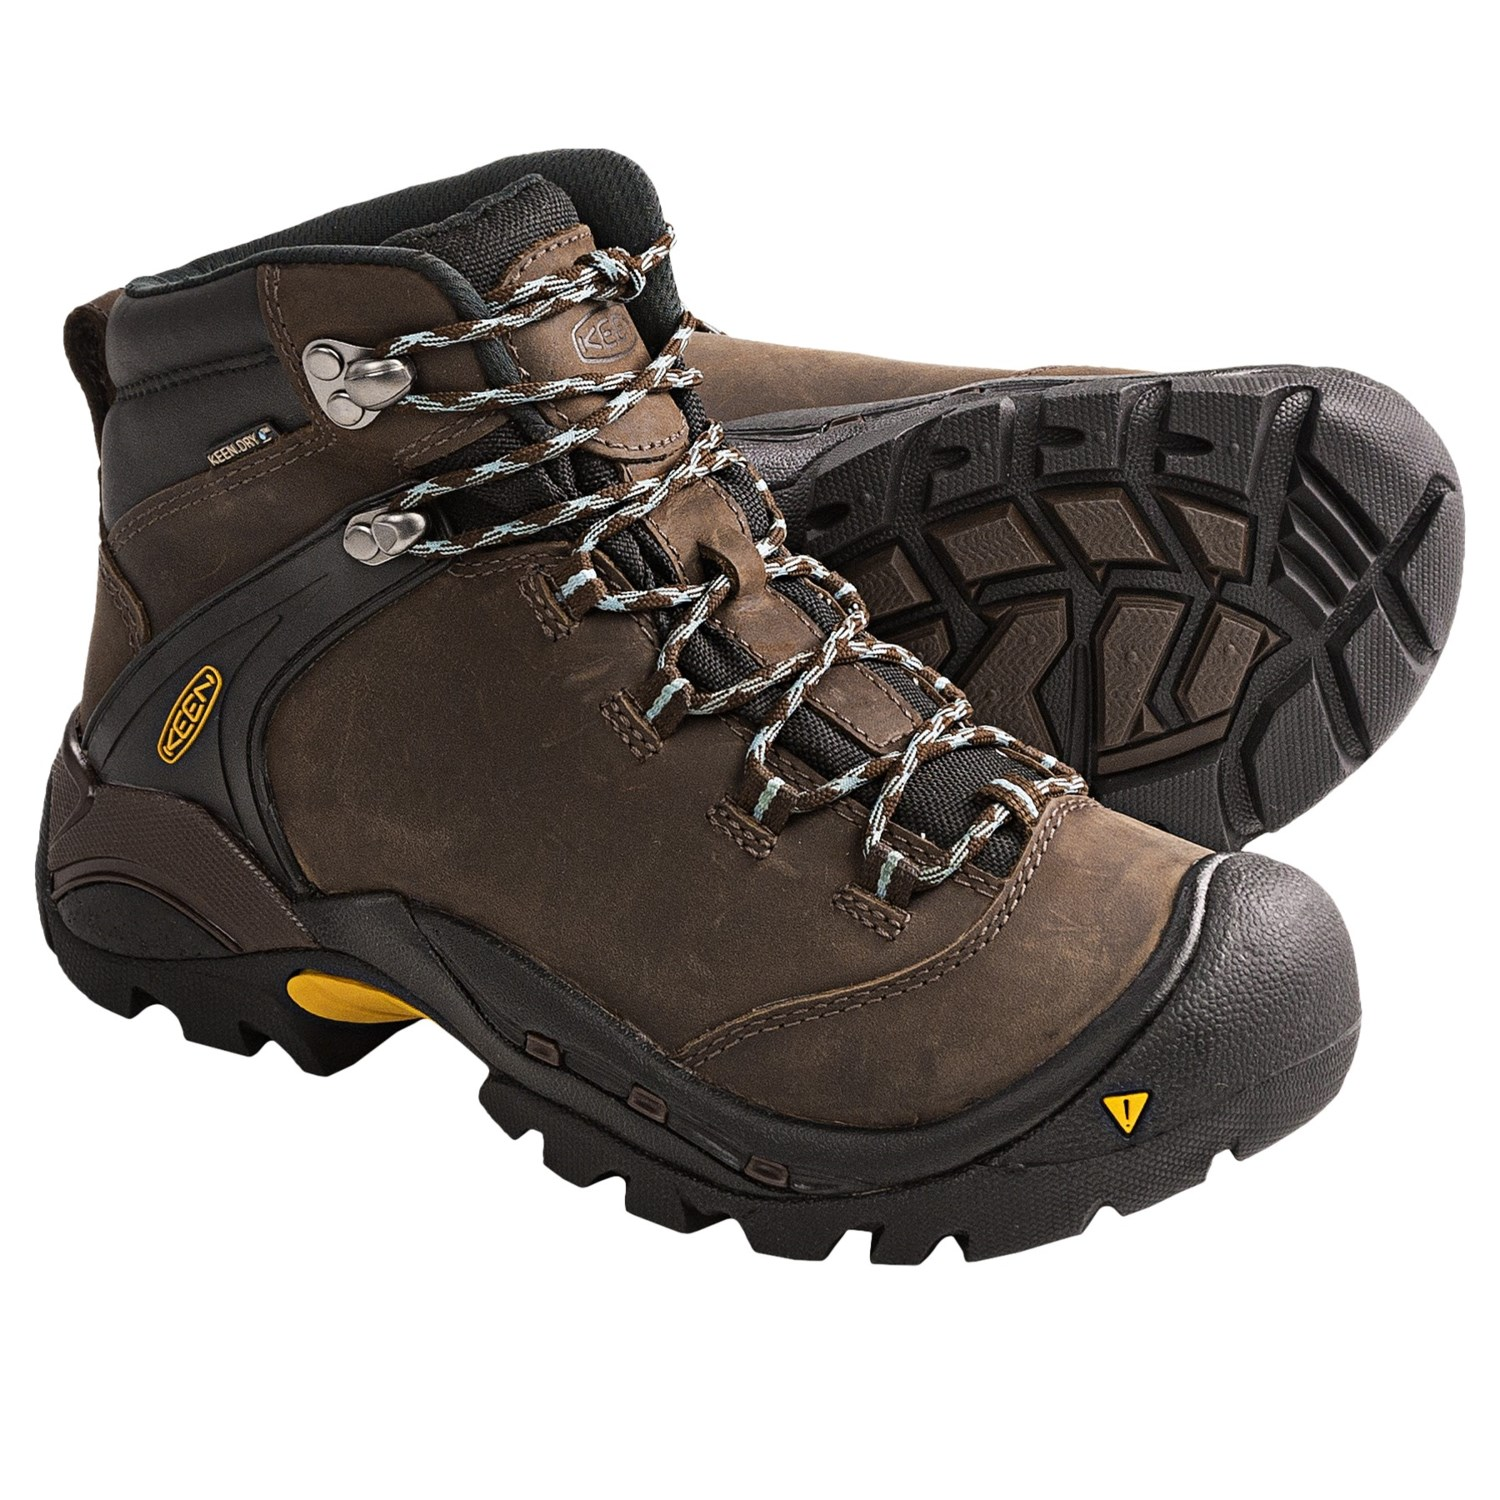 keen ketchum leather hiking boots waterproof for